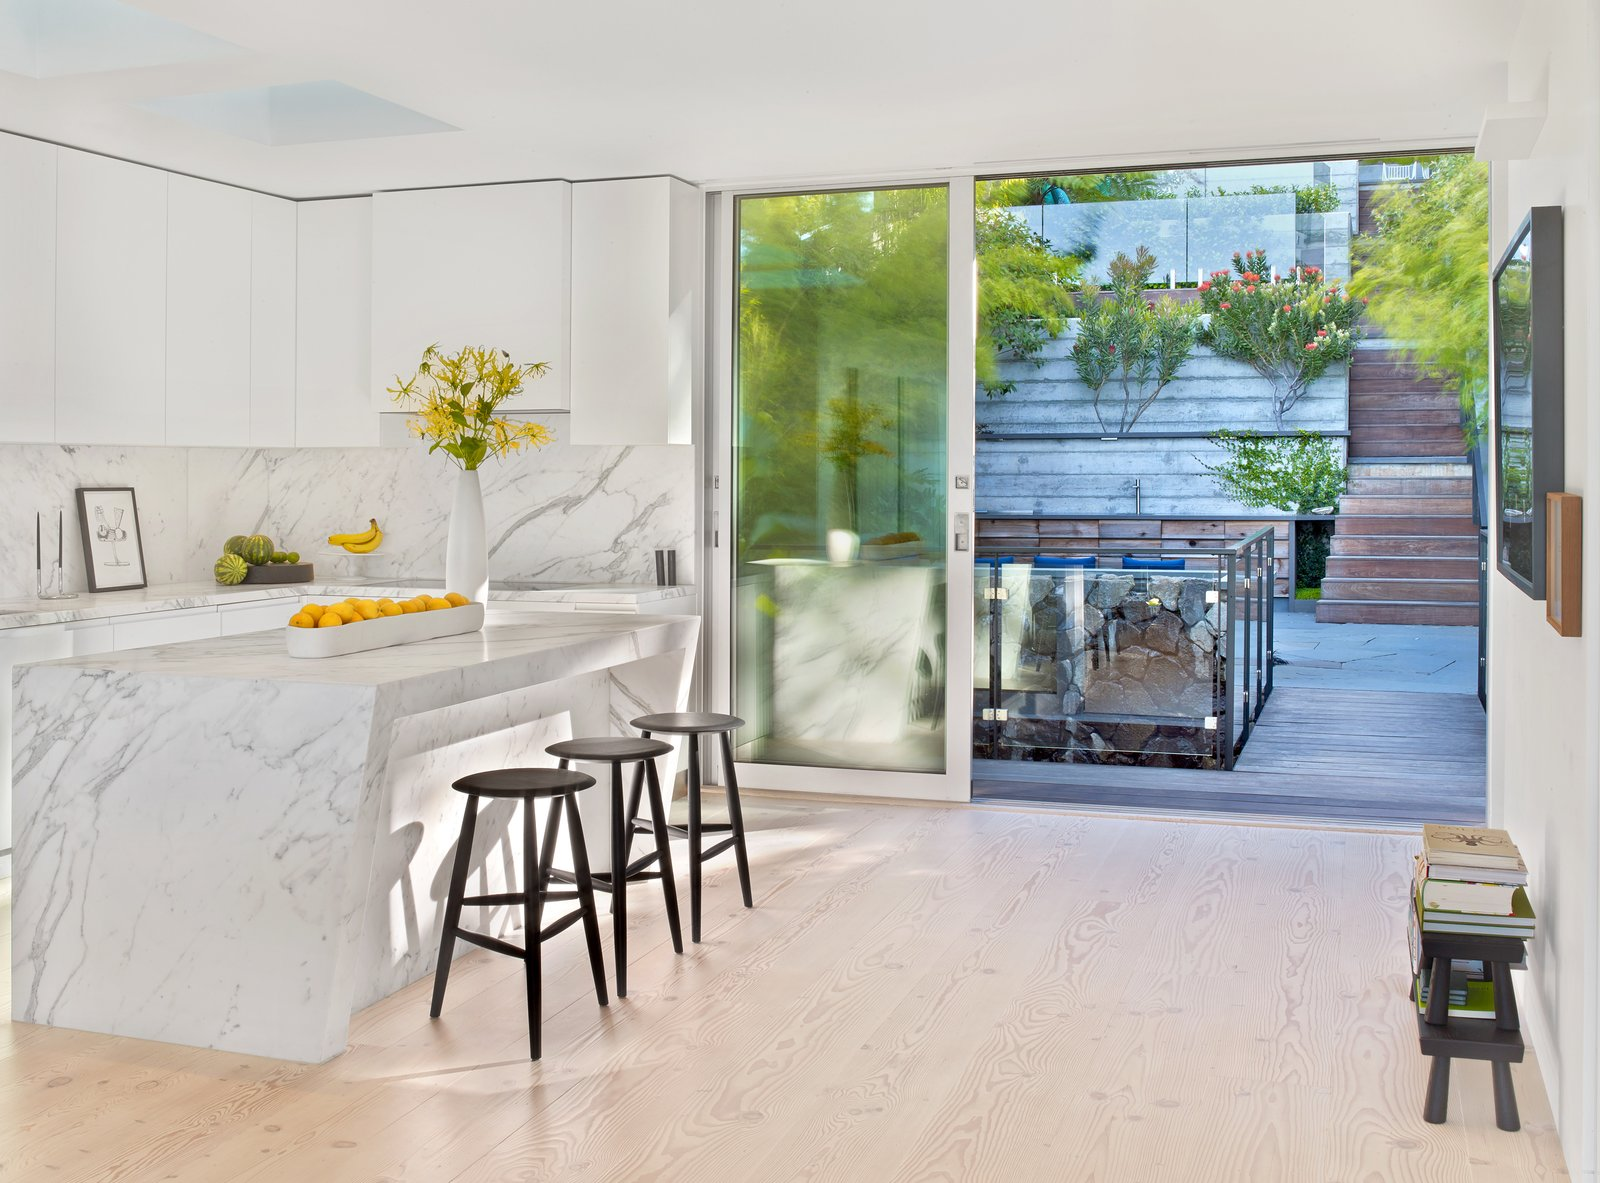 Tagged: Kitchen, Marble Counter, White Cabinet, Light Hardwood Floor, Marble Backsplashe, and Ceiling Lighting.  Glen Park Residence by CCS Architecture